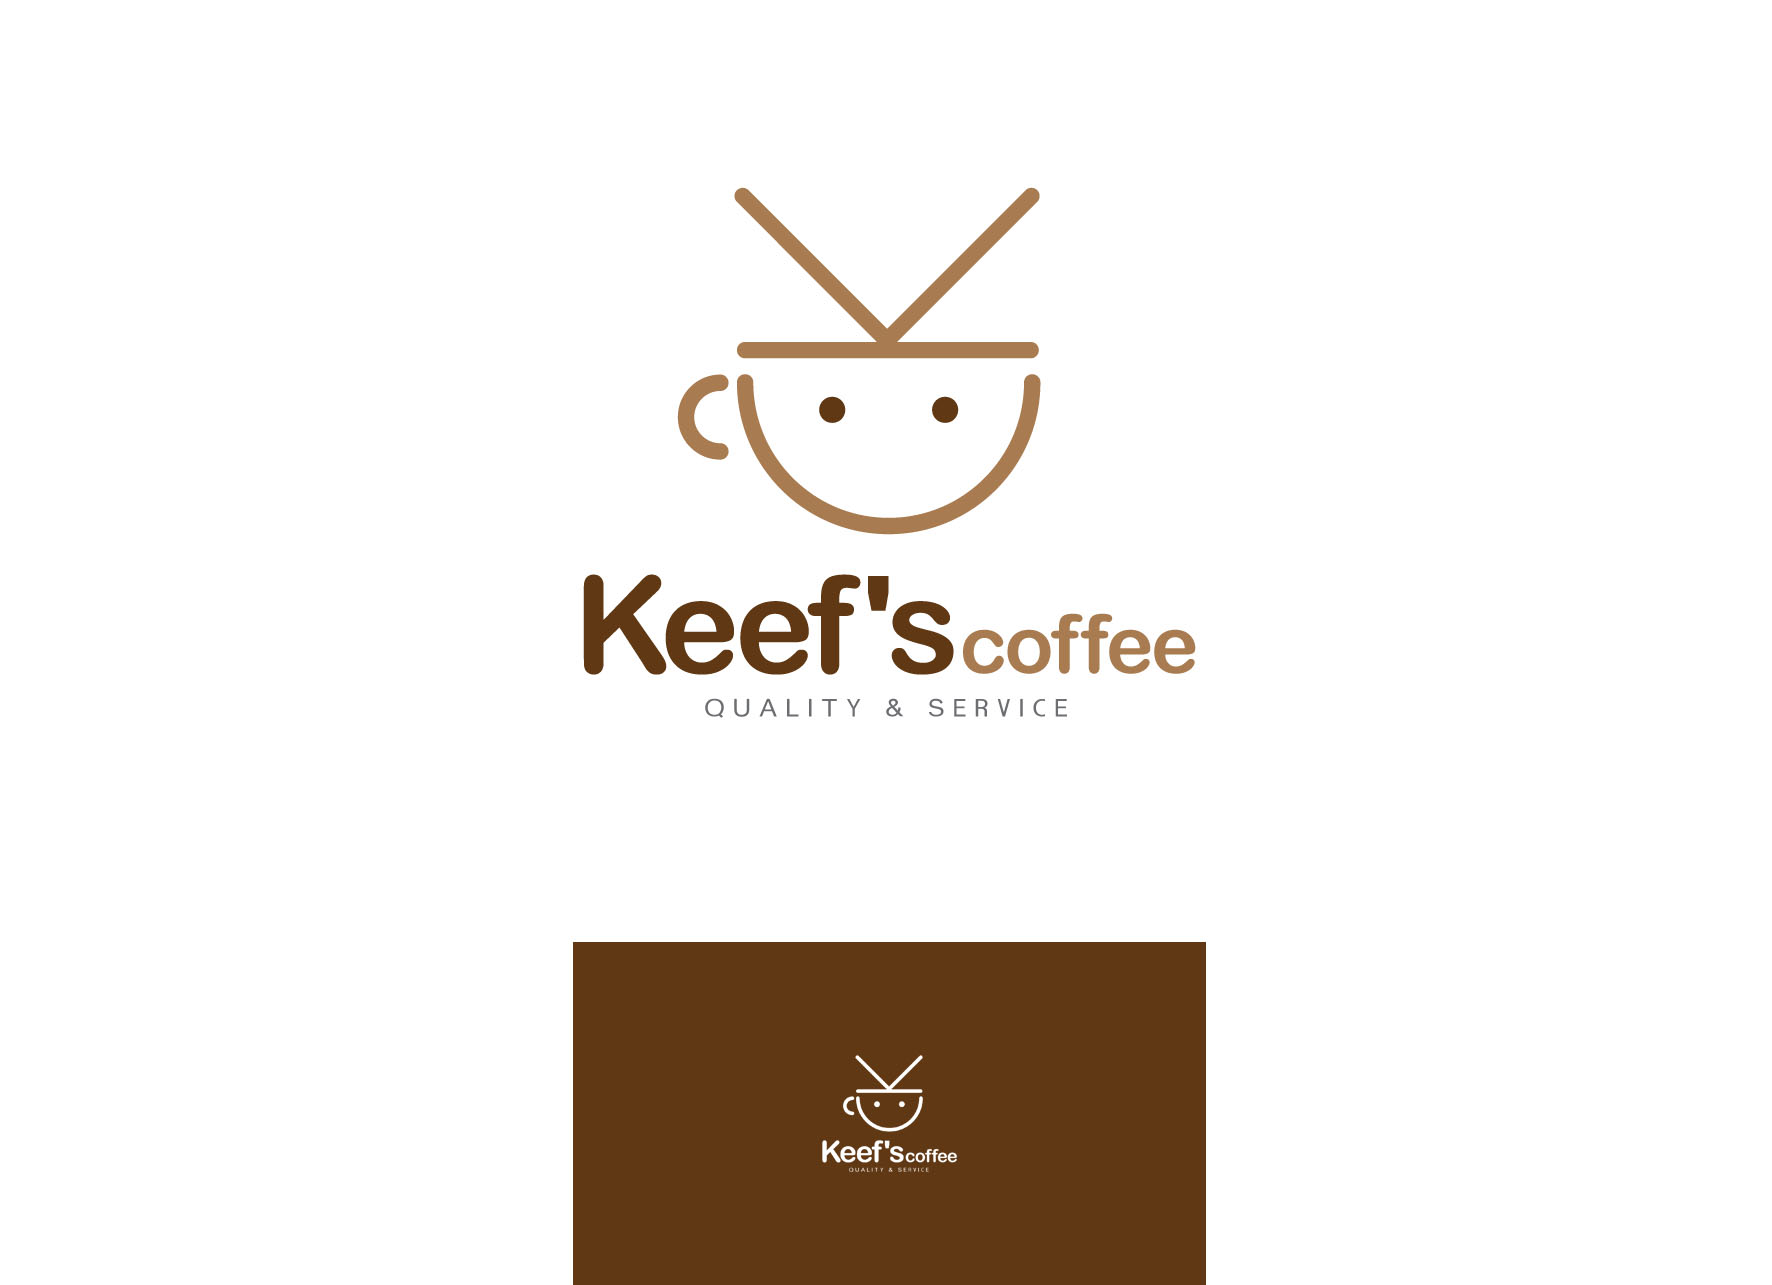 Logo Design by tanganpanas - Entry No. 59 in the Logo Design Contest Keef's coffee Logo Design.